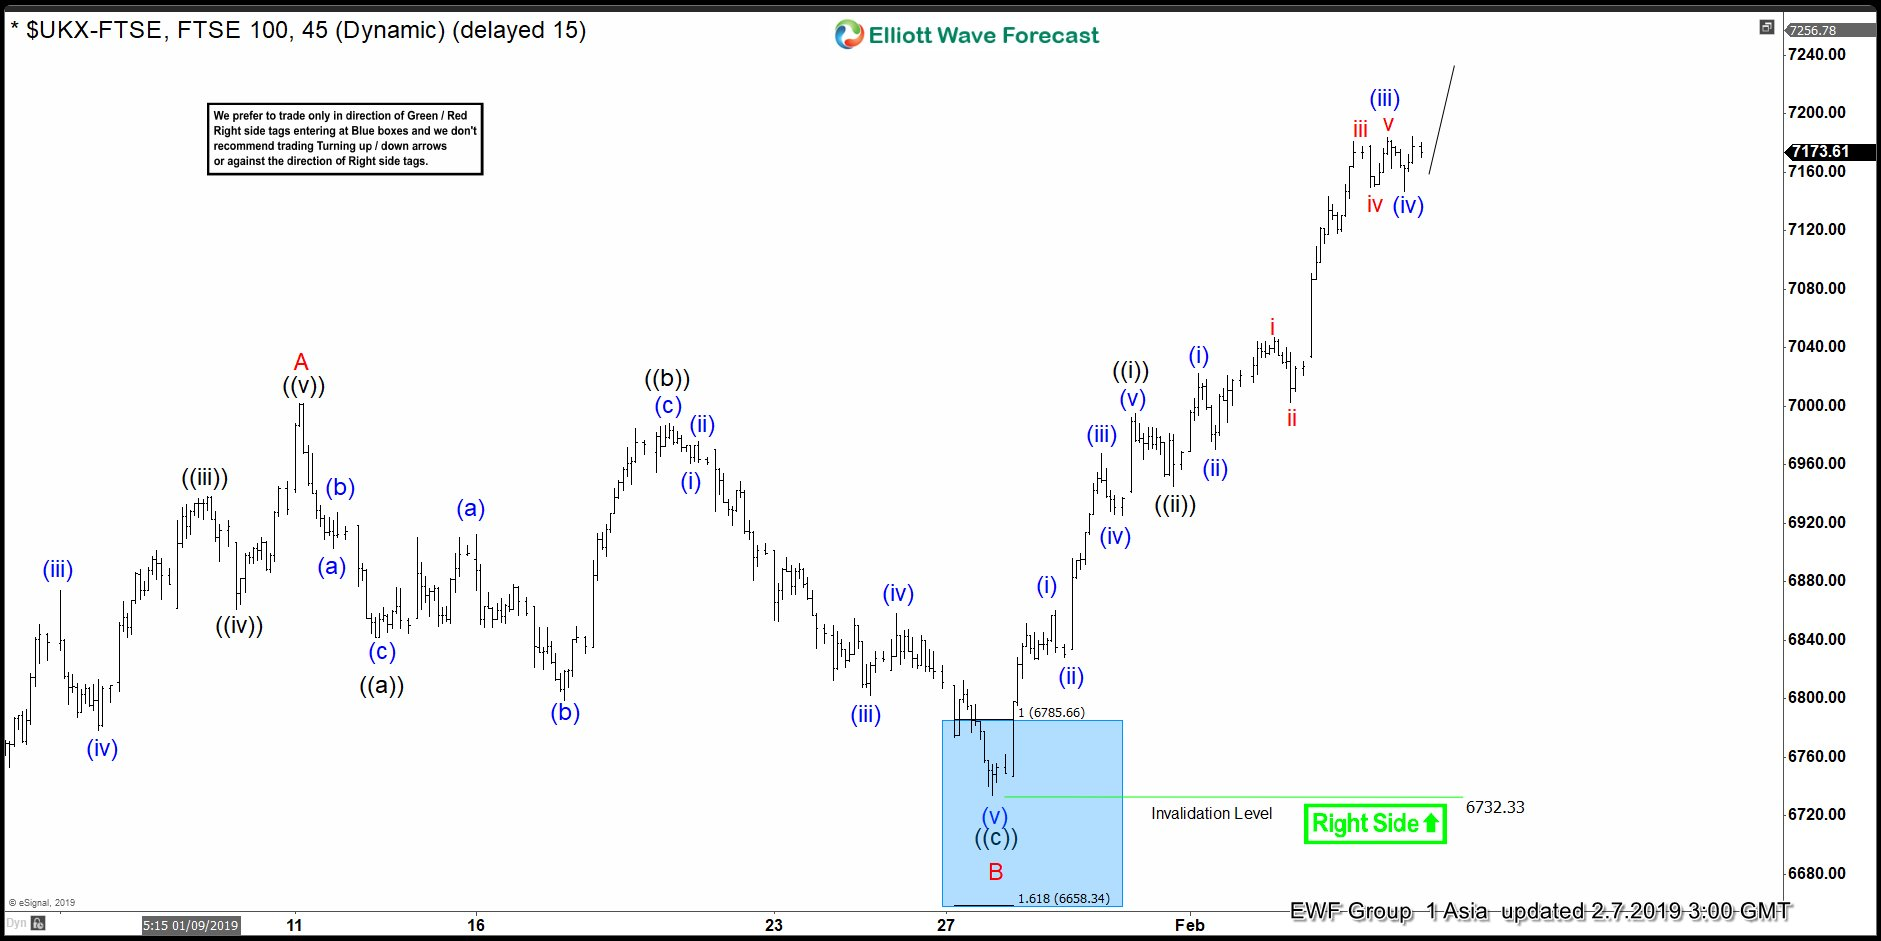 Elliott Wave View Suggest FTSE Close Reaching Extreme